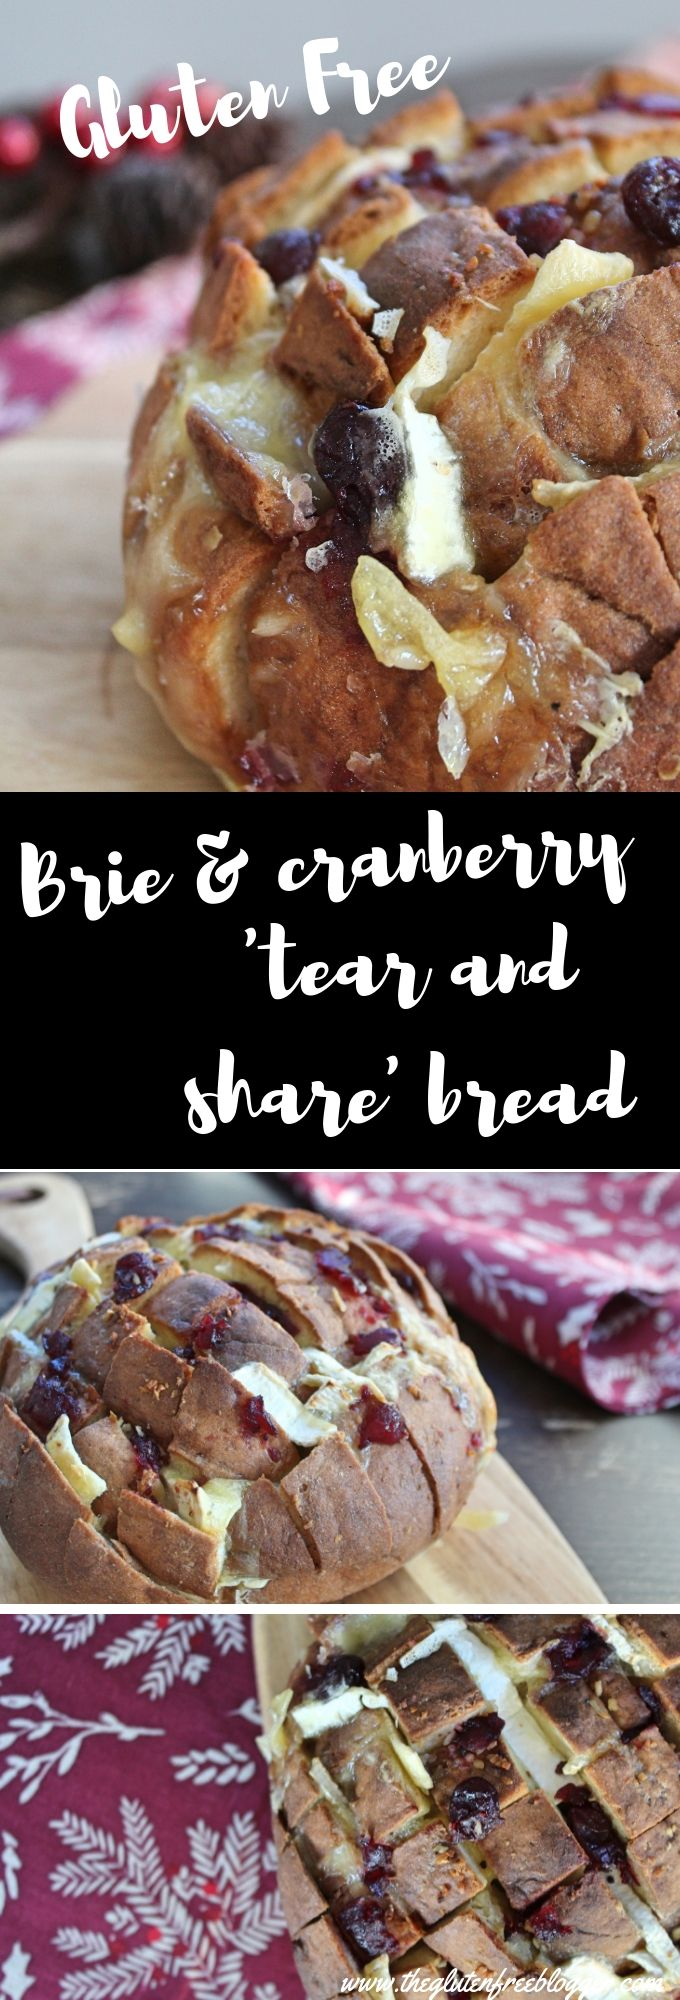 Gluten free 'tear and share' bread with brie and cranberry #tearandsharebread